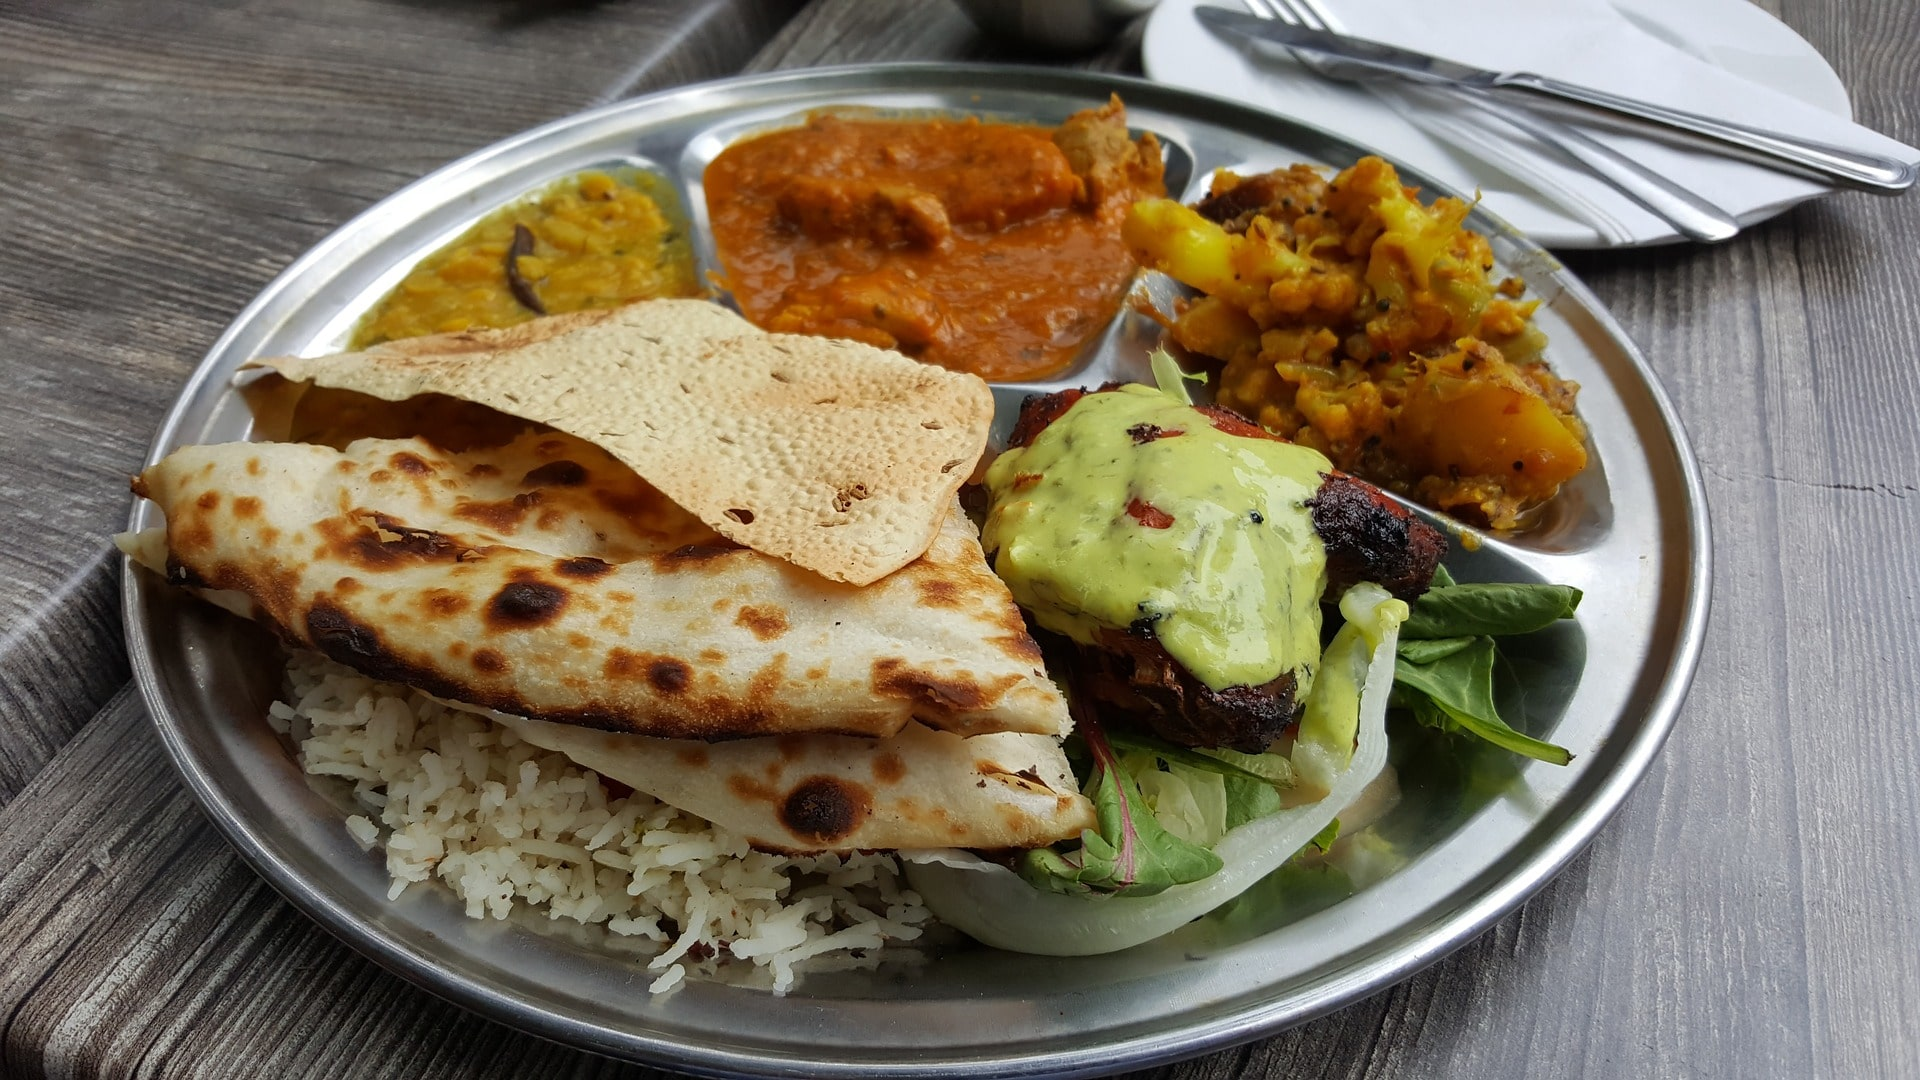 One of the most delicious things to do in London involves exploring the Indian restaurants along Brick Lane